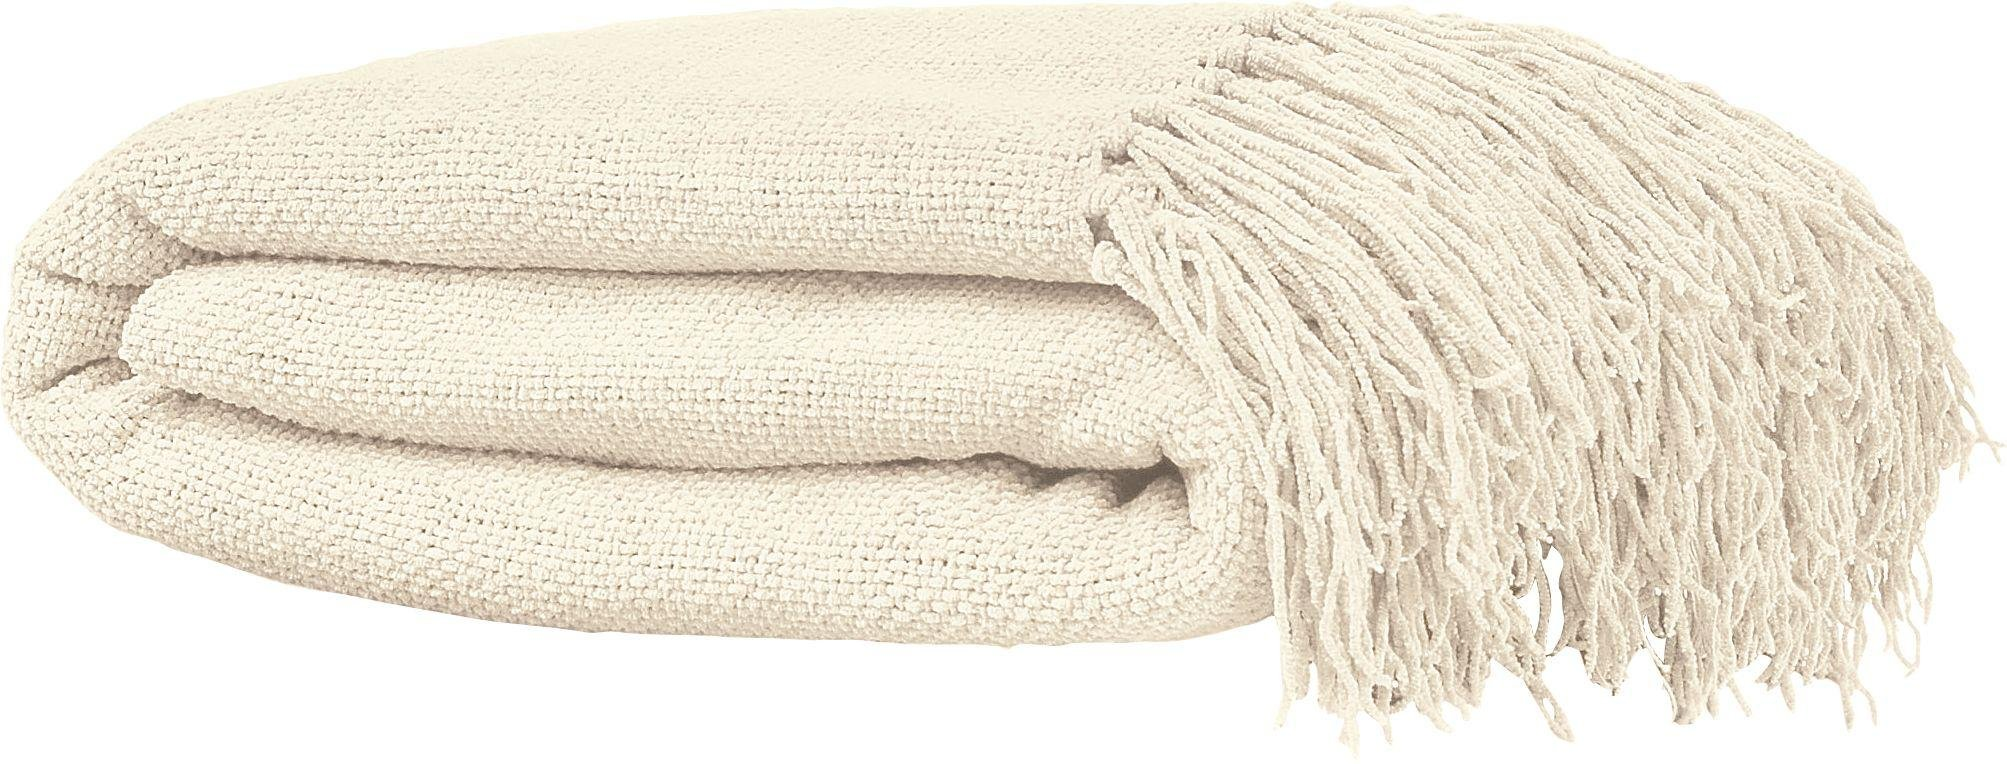 Argos Home Diamond Large Cotton Throw - Natural